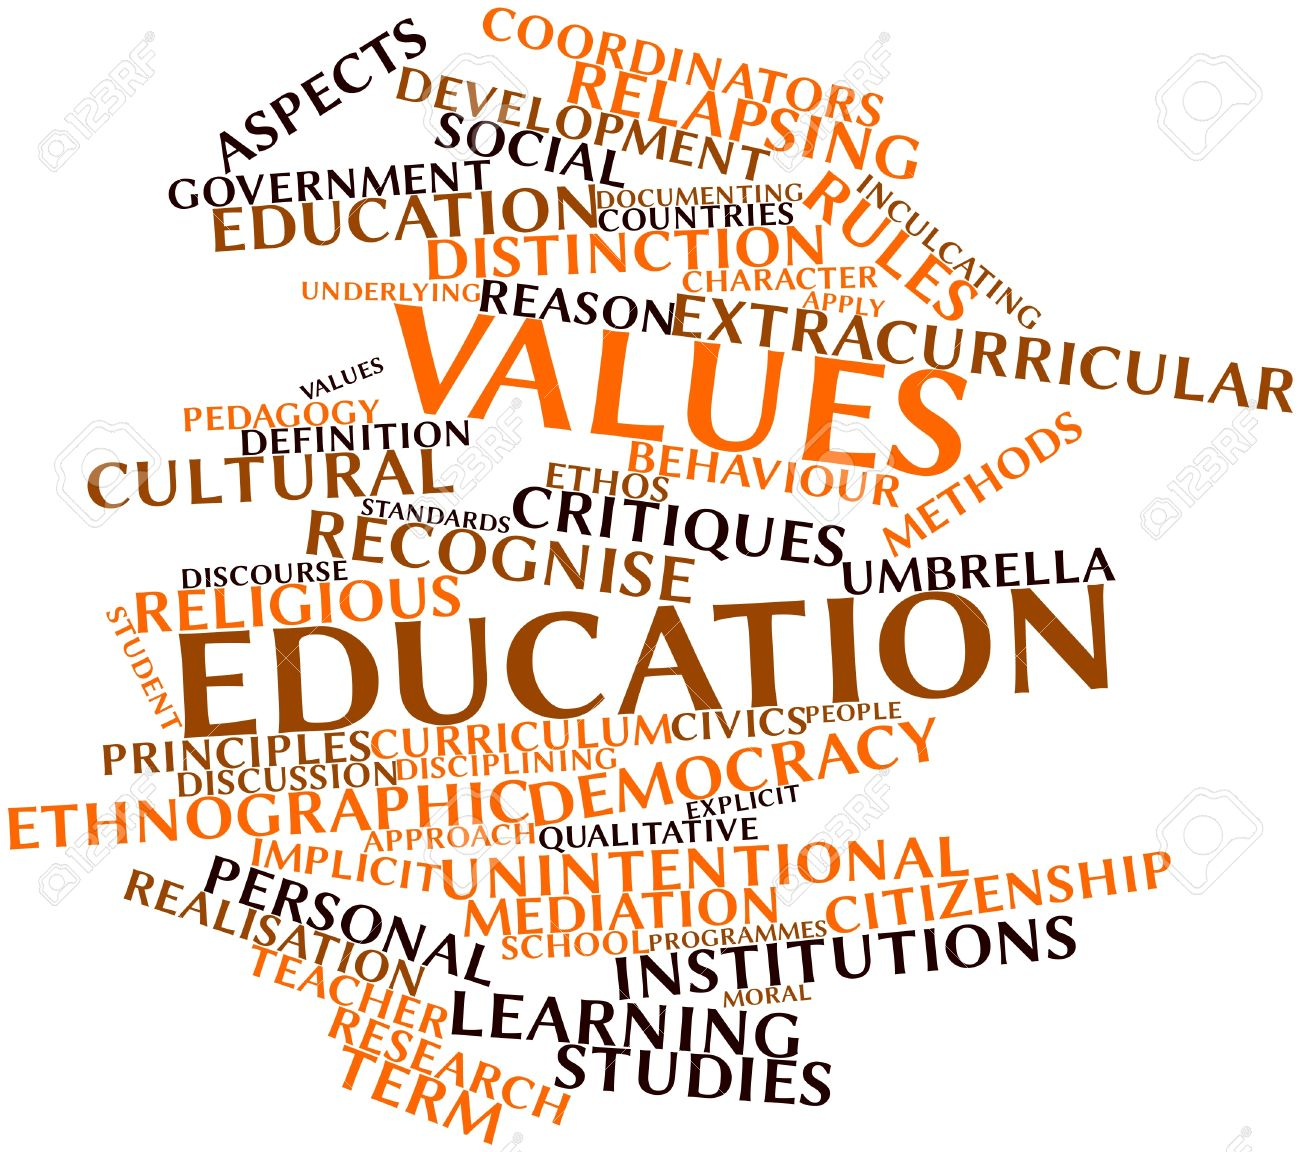 Education and the Higher Values